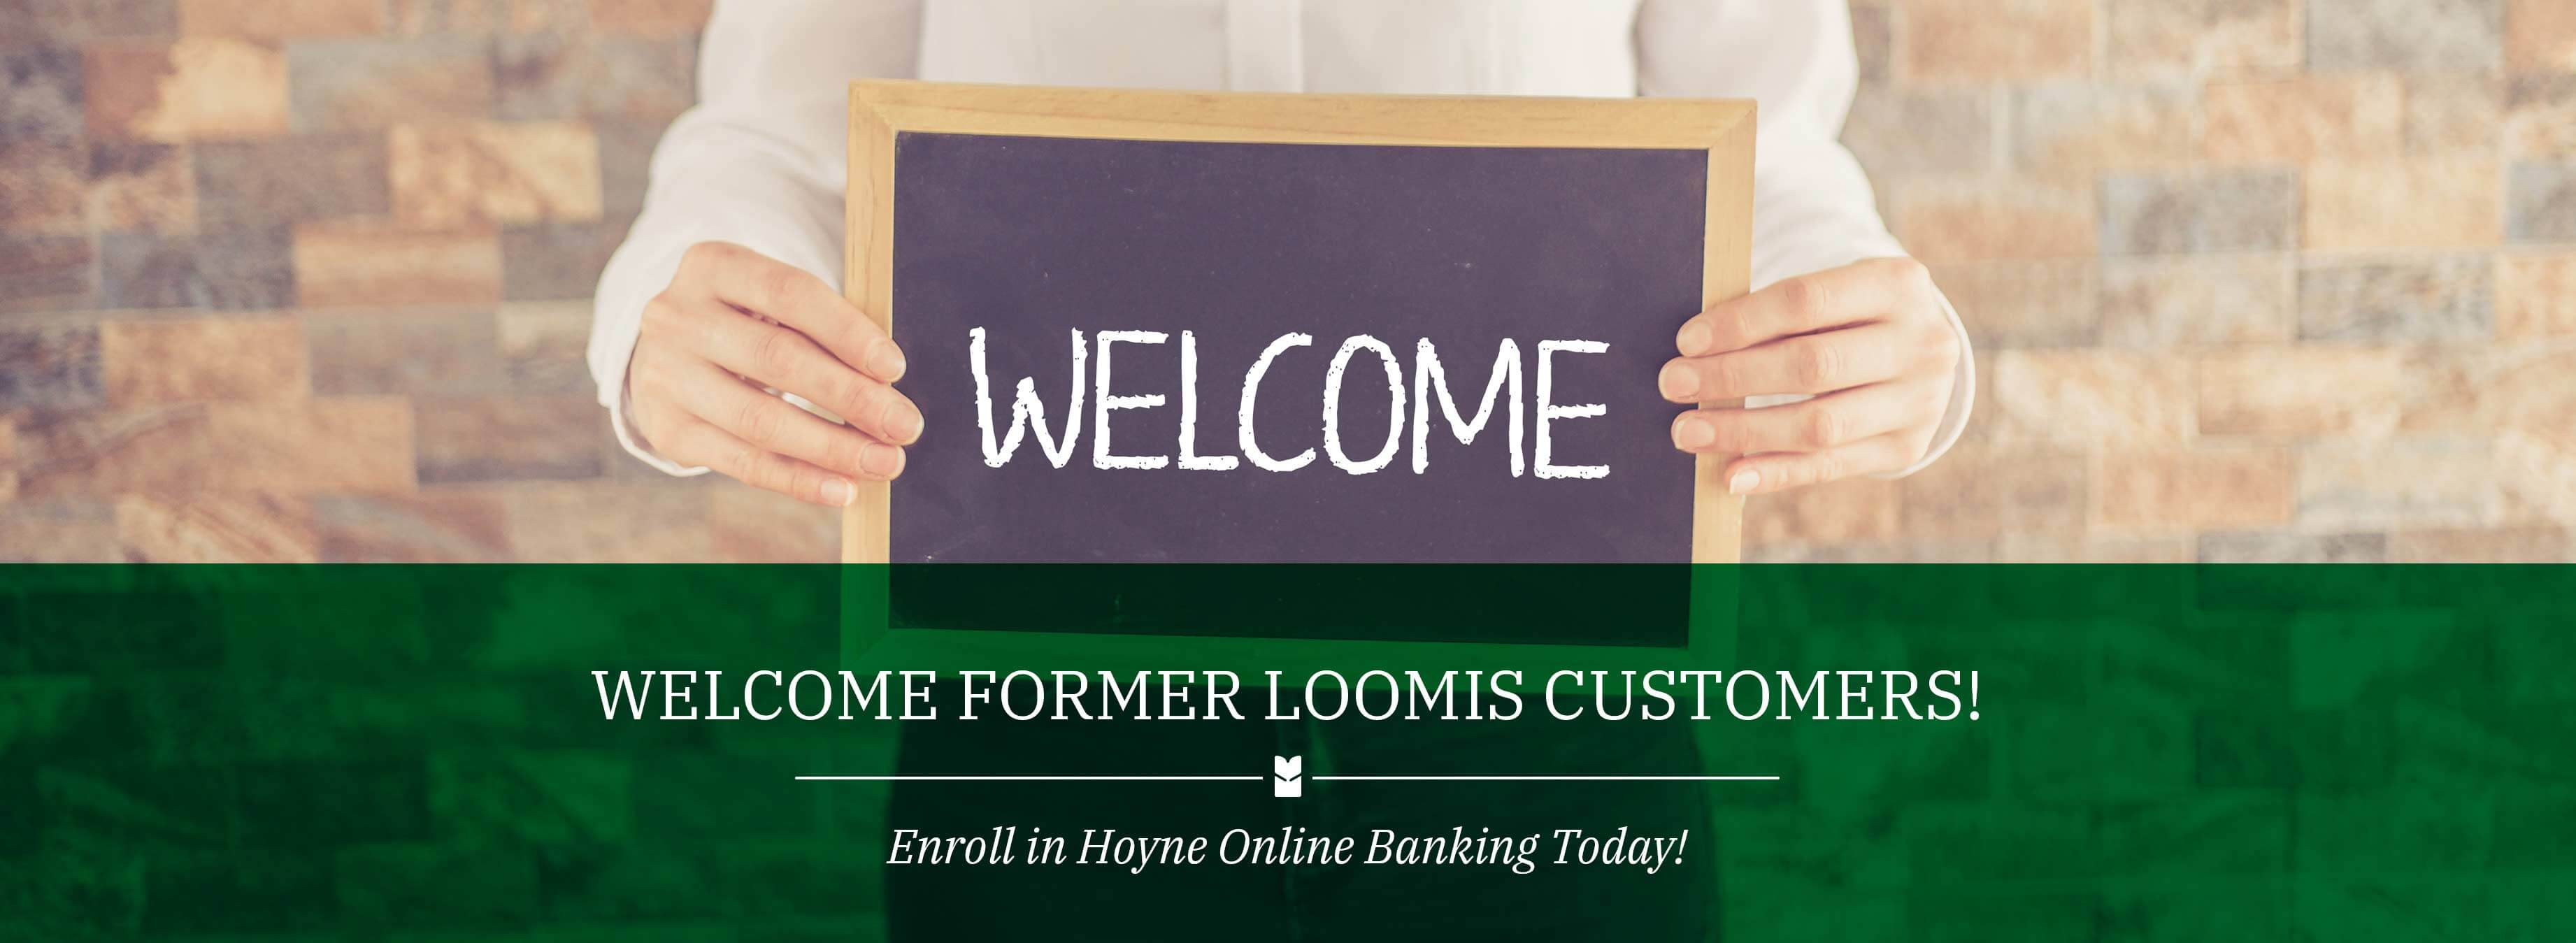 WELCOME FORMER LOOMIS CUSTOMERS! Enroll in Hoyne Online Banking Today!